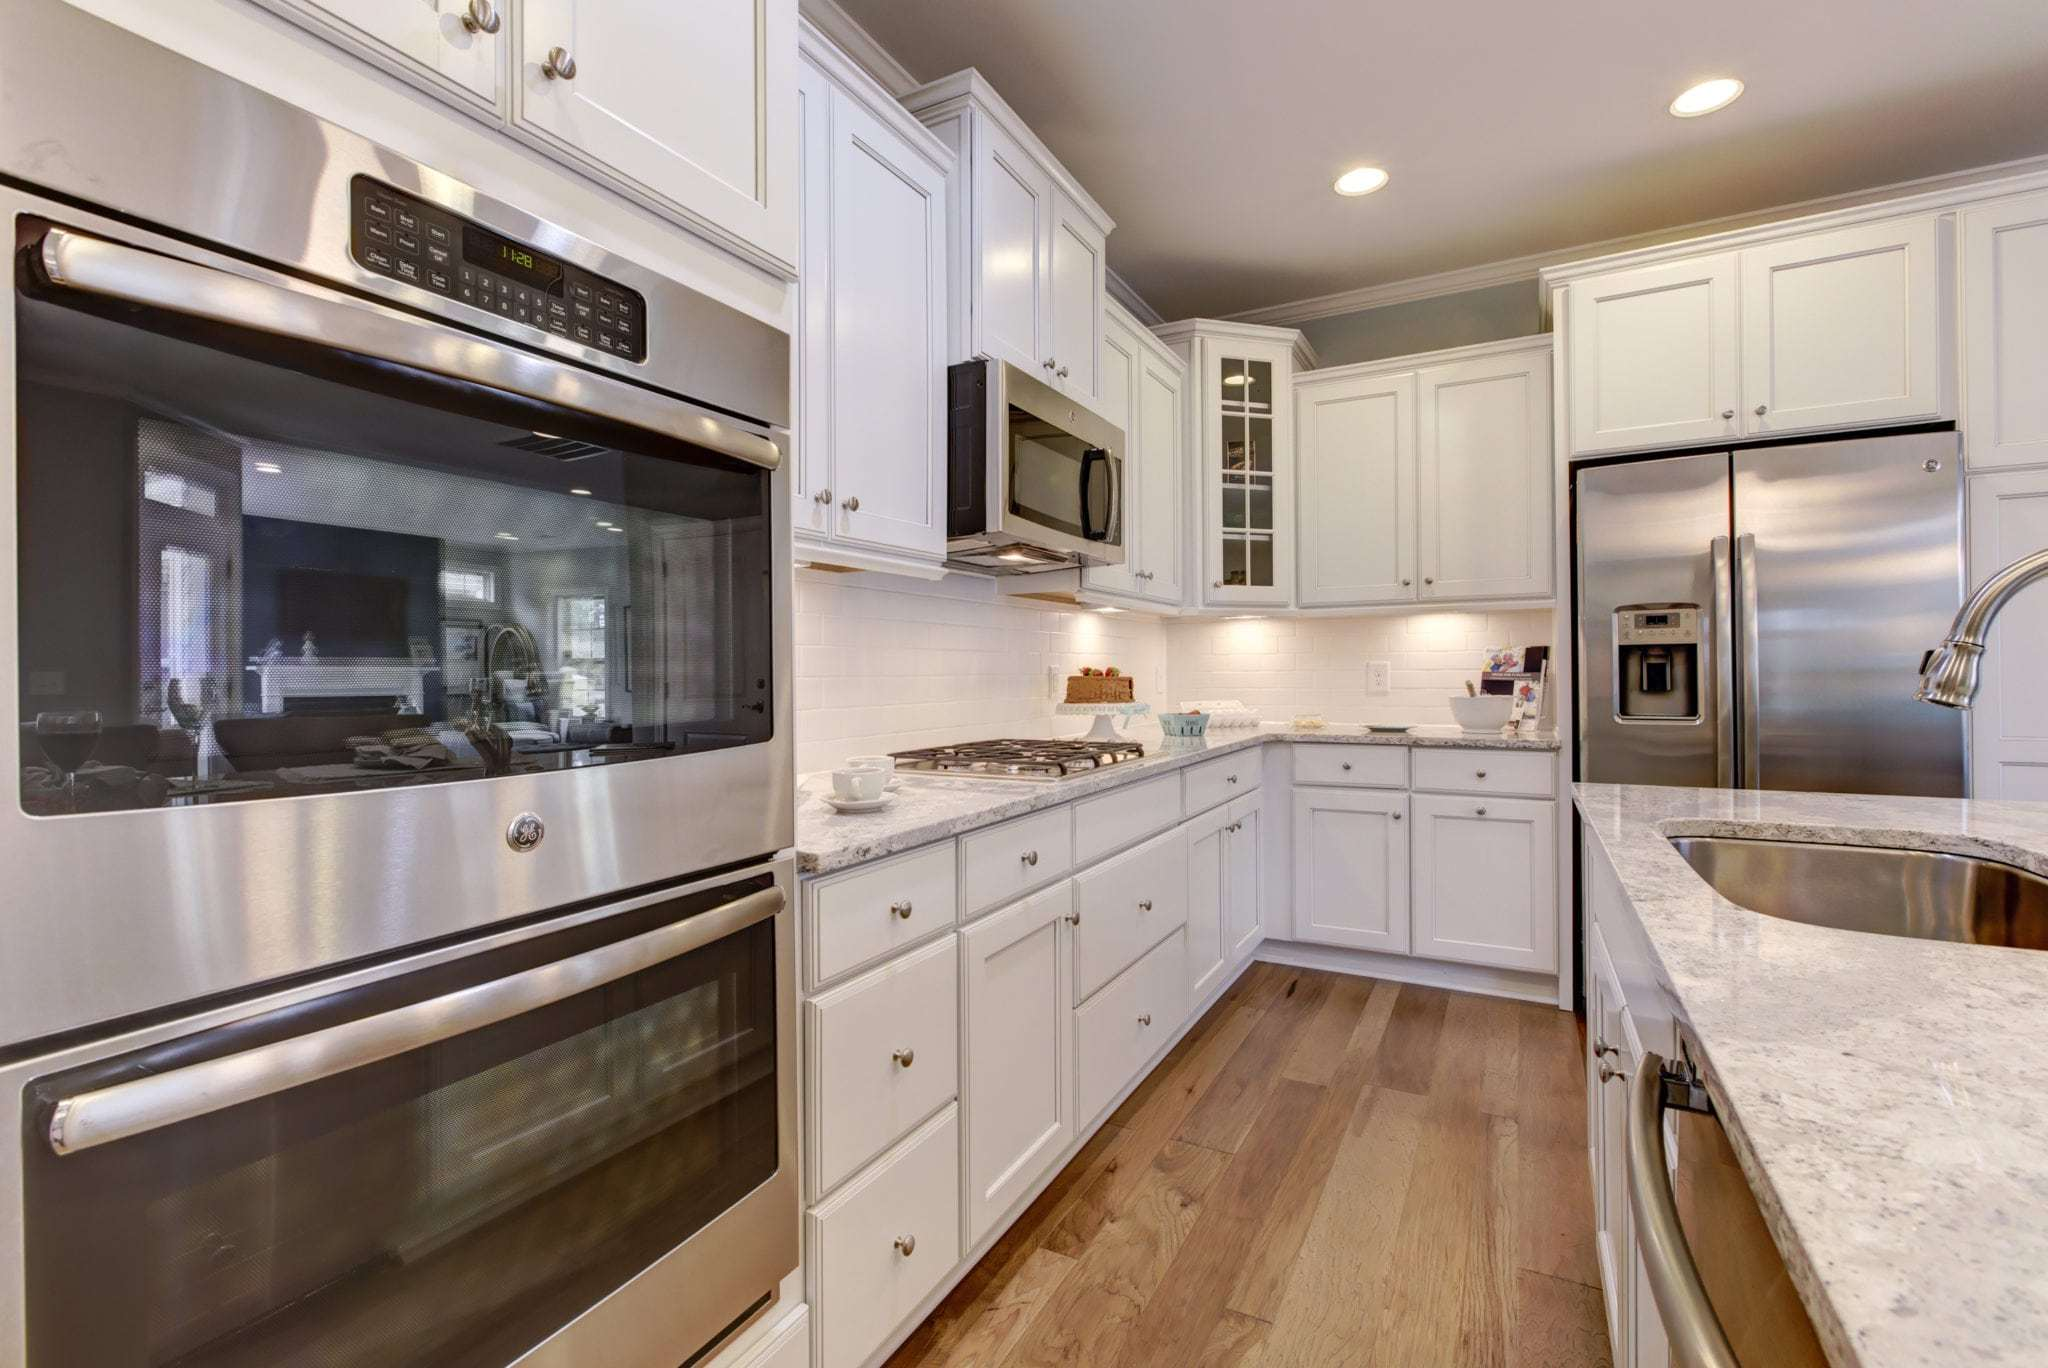 Kitchen featured in the Palazzo By Epcon Communities in Charlotte, NC